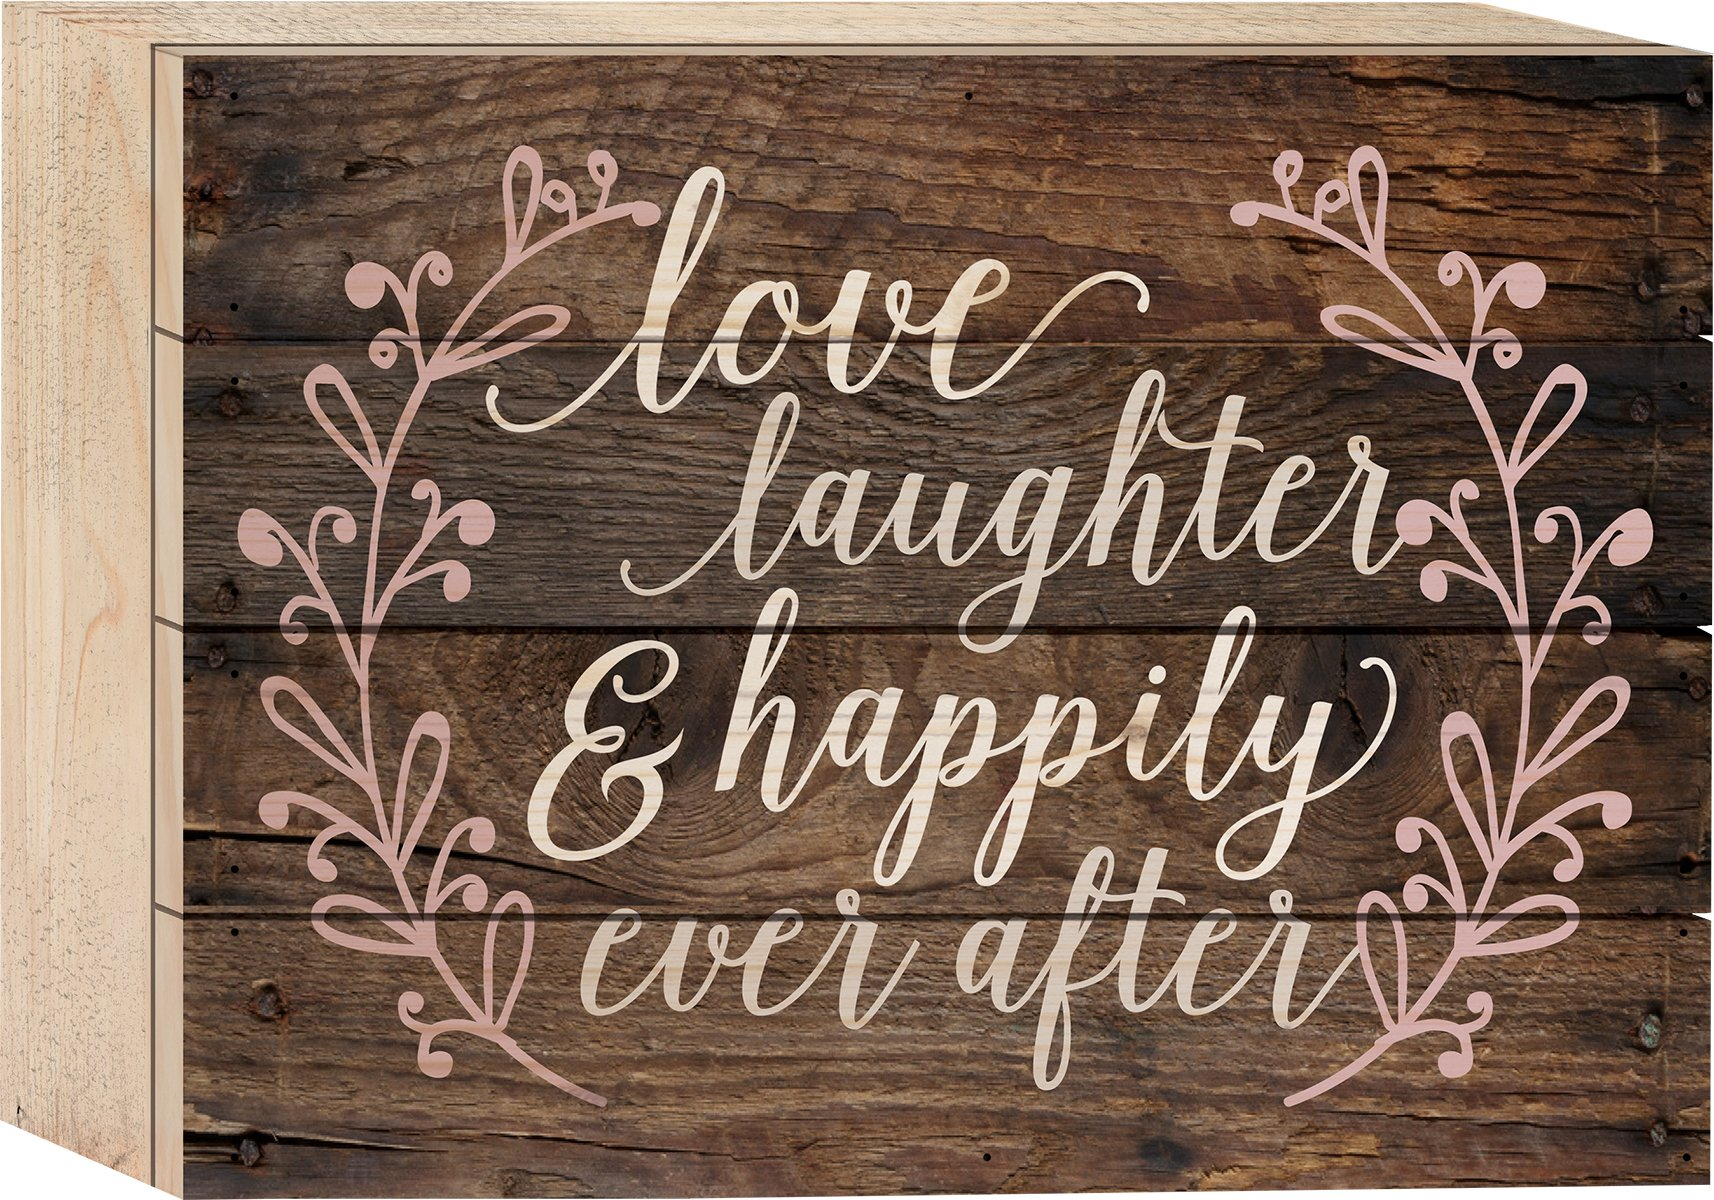 P. GRAHAM DUNN Love Laughter & Happily Ever After Rustic 6 x 8 Wood Block-Style Wall Art Sign Plaque